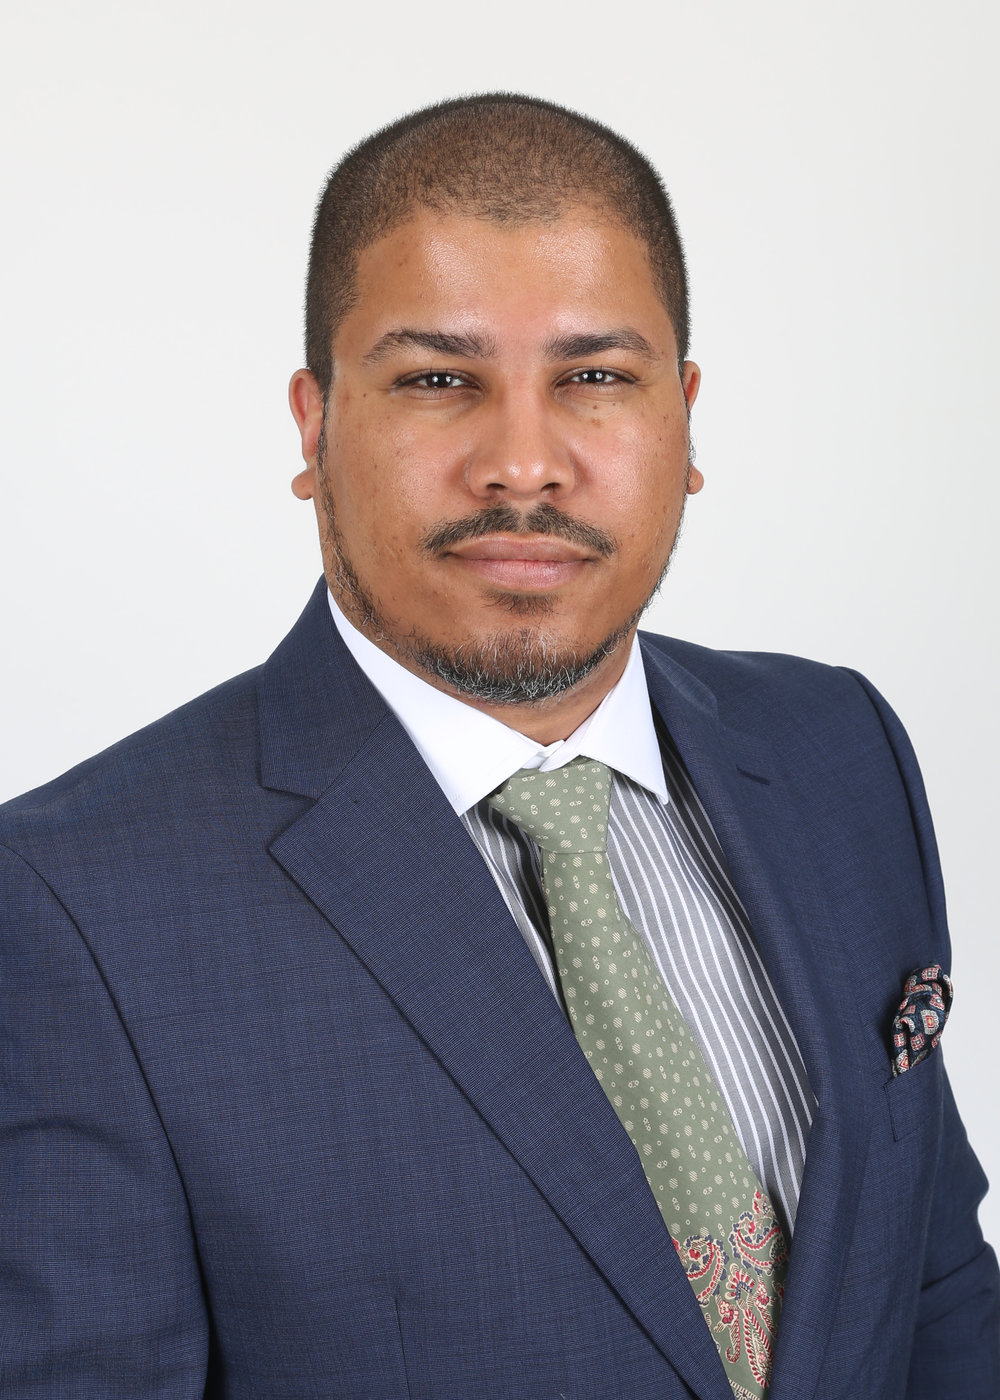 Gardner Rivera, MSRED - Seasoned real estate professional with 12 years of extensive experience in sales, construction project management and property management.Goal-driven CRE professional with a master's degree in real estate development and more than ten years of experience in real estate. Possess a commitment to values and principles, as well as a thorough understanding of market-rate development projects, including overall deal structuring, land planning, entitlement process, finance, design and construction management. Innovative business development skills and strategic project pipeline generation. Ability to think and work in an entrepreneurial environment and thrives in situations that require creative solutions and strategic execution.gardner.rivera@kwcommercial.com